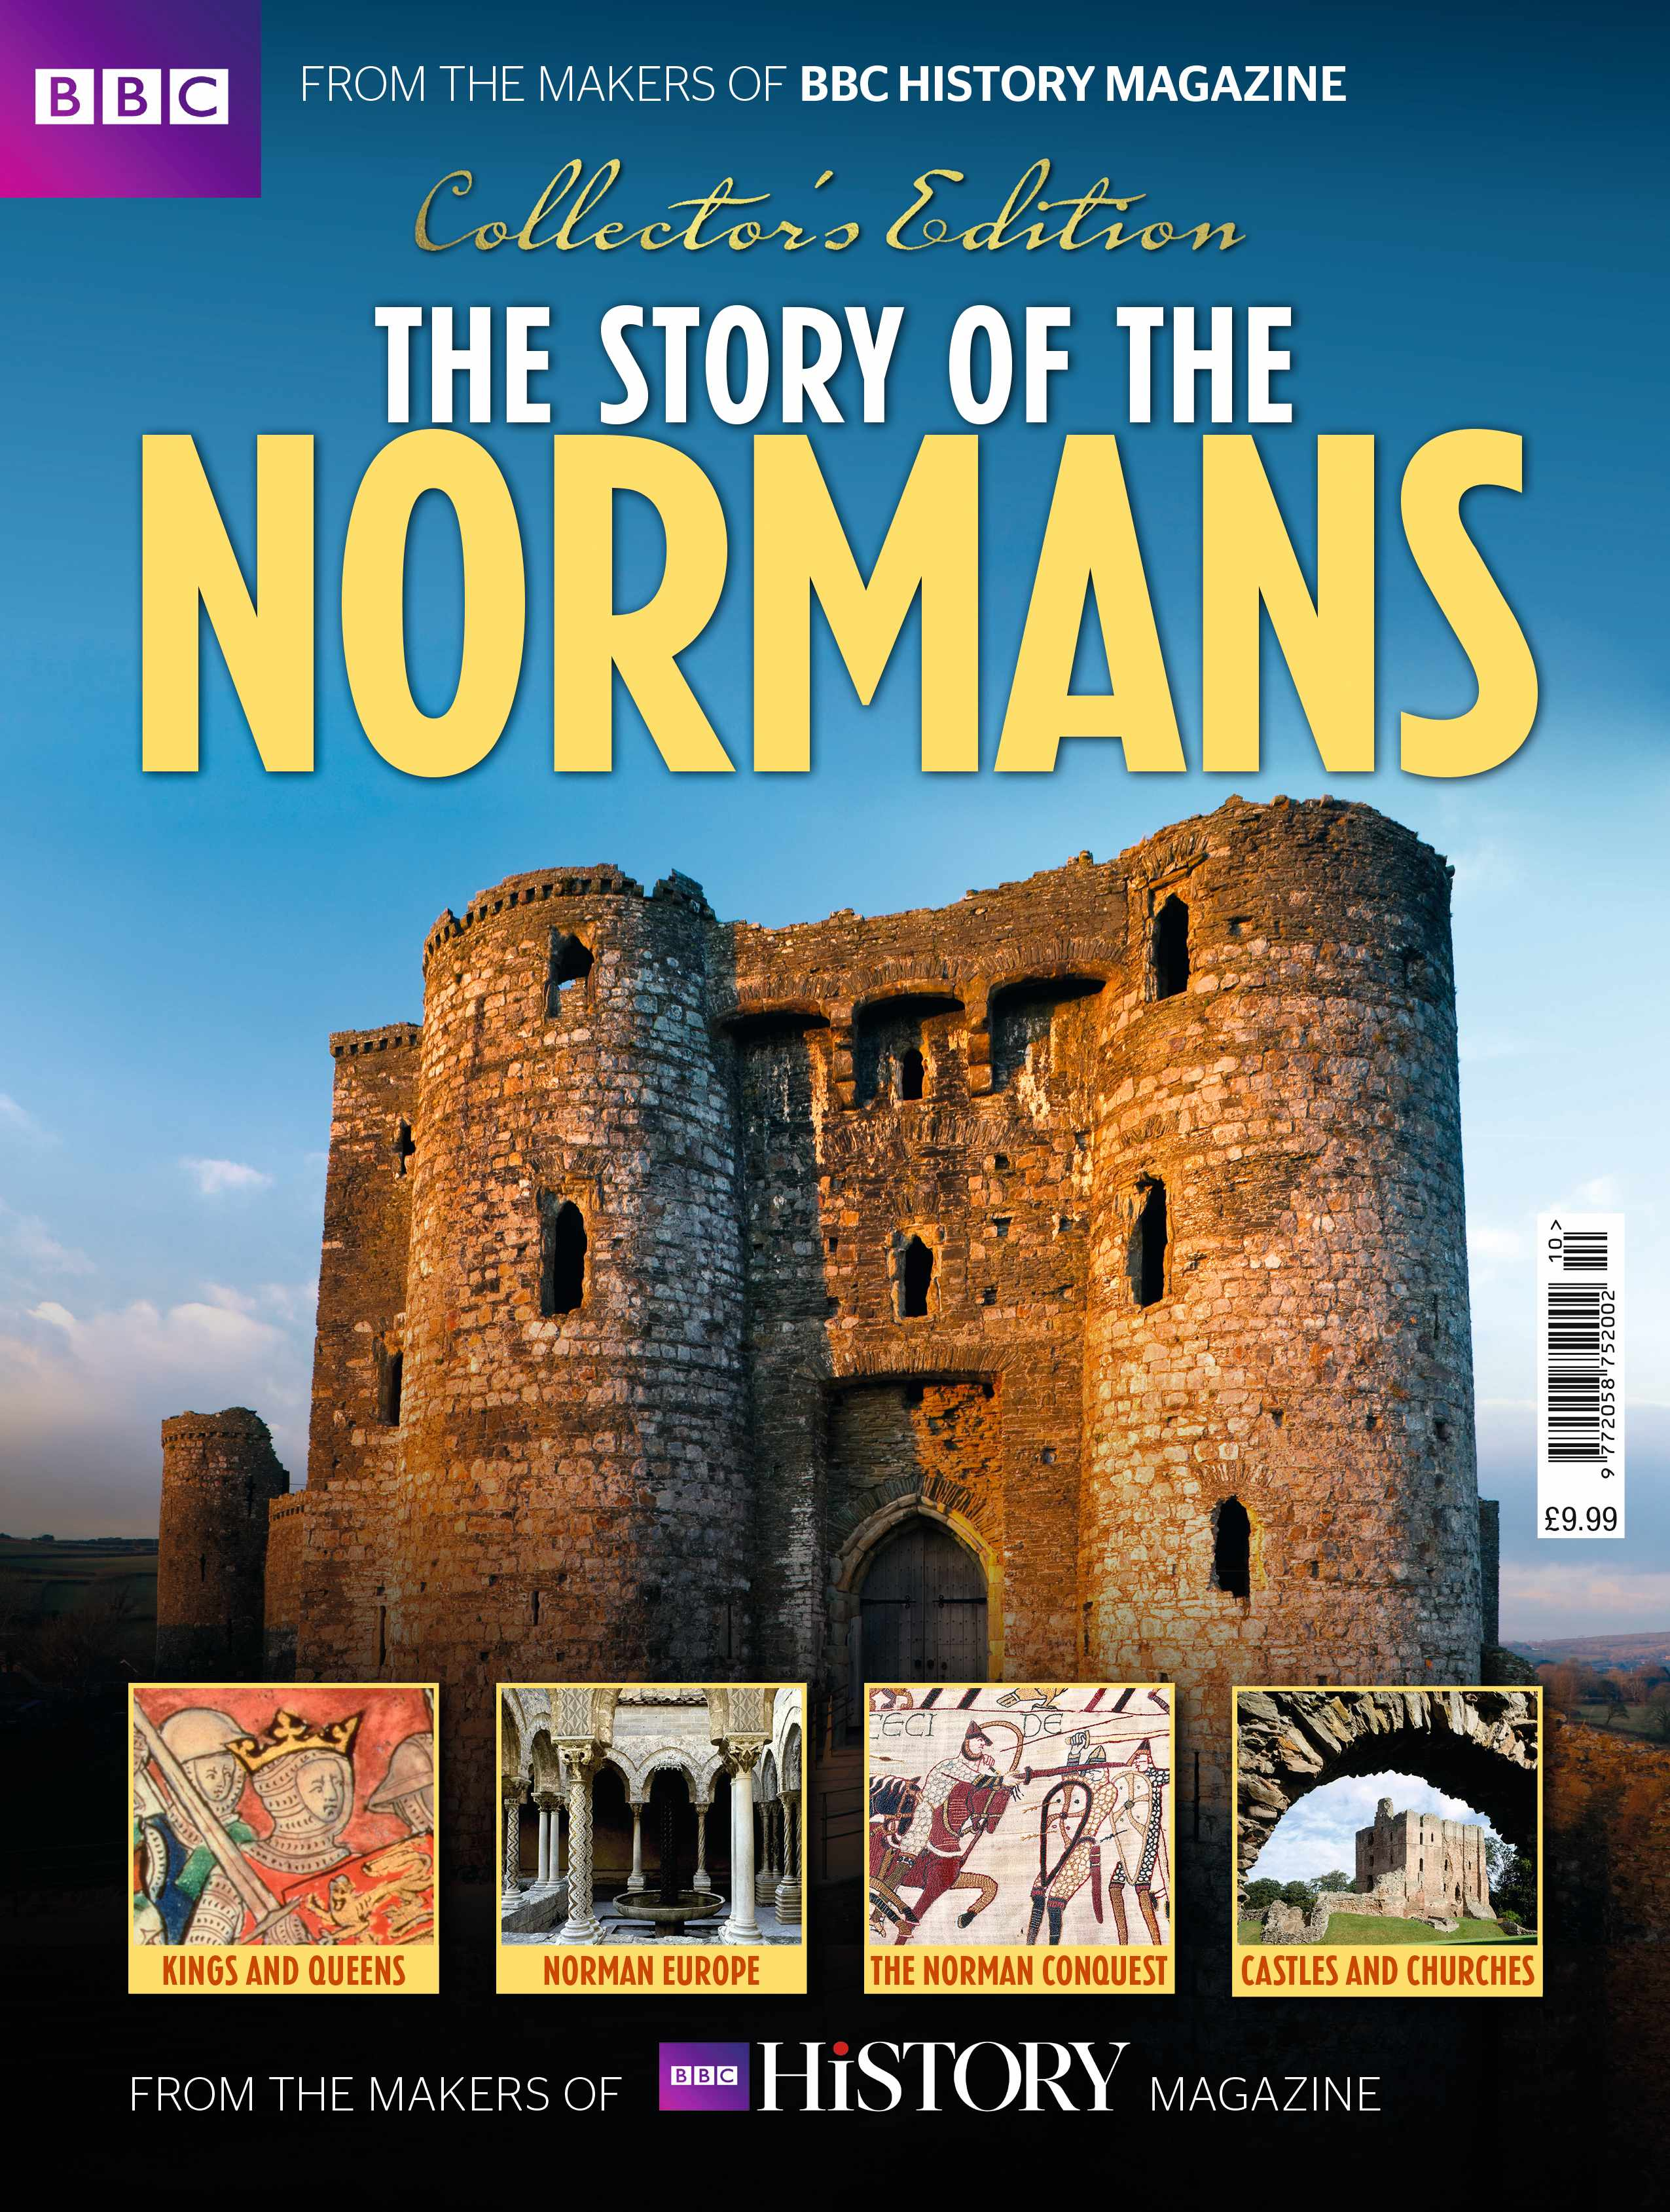 The Story of the Normans.